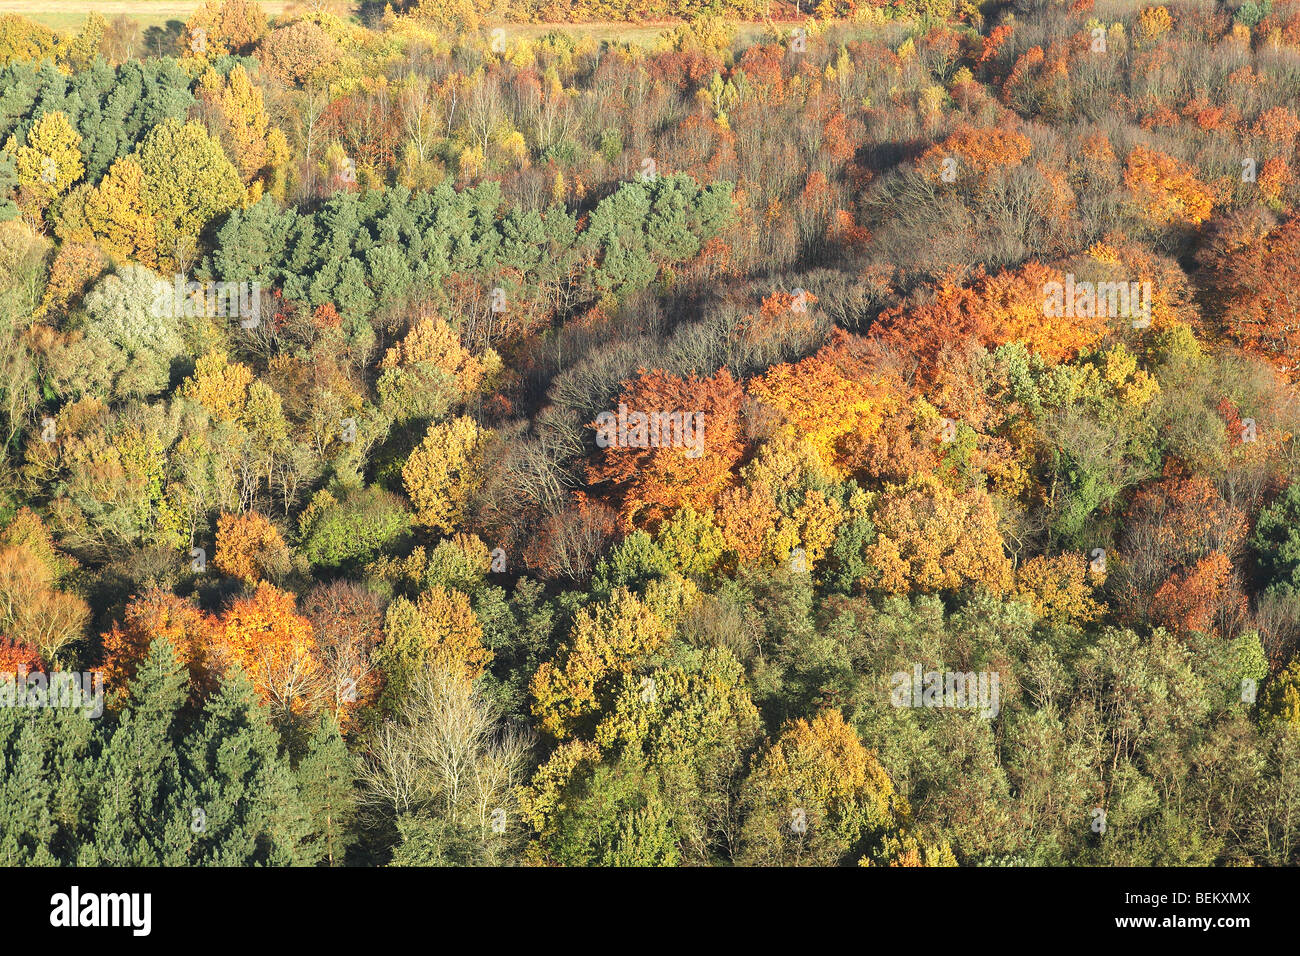 Mixed forest with Oak (Quercus robur) Beech (Fagus sylvatica) and Birches (Betula sp.) with pine forest in autumn - Stock Image